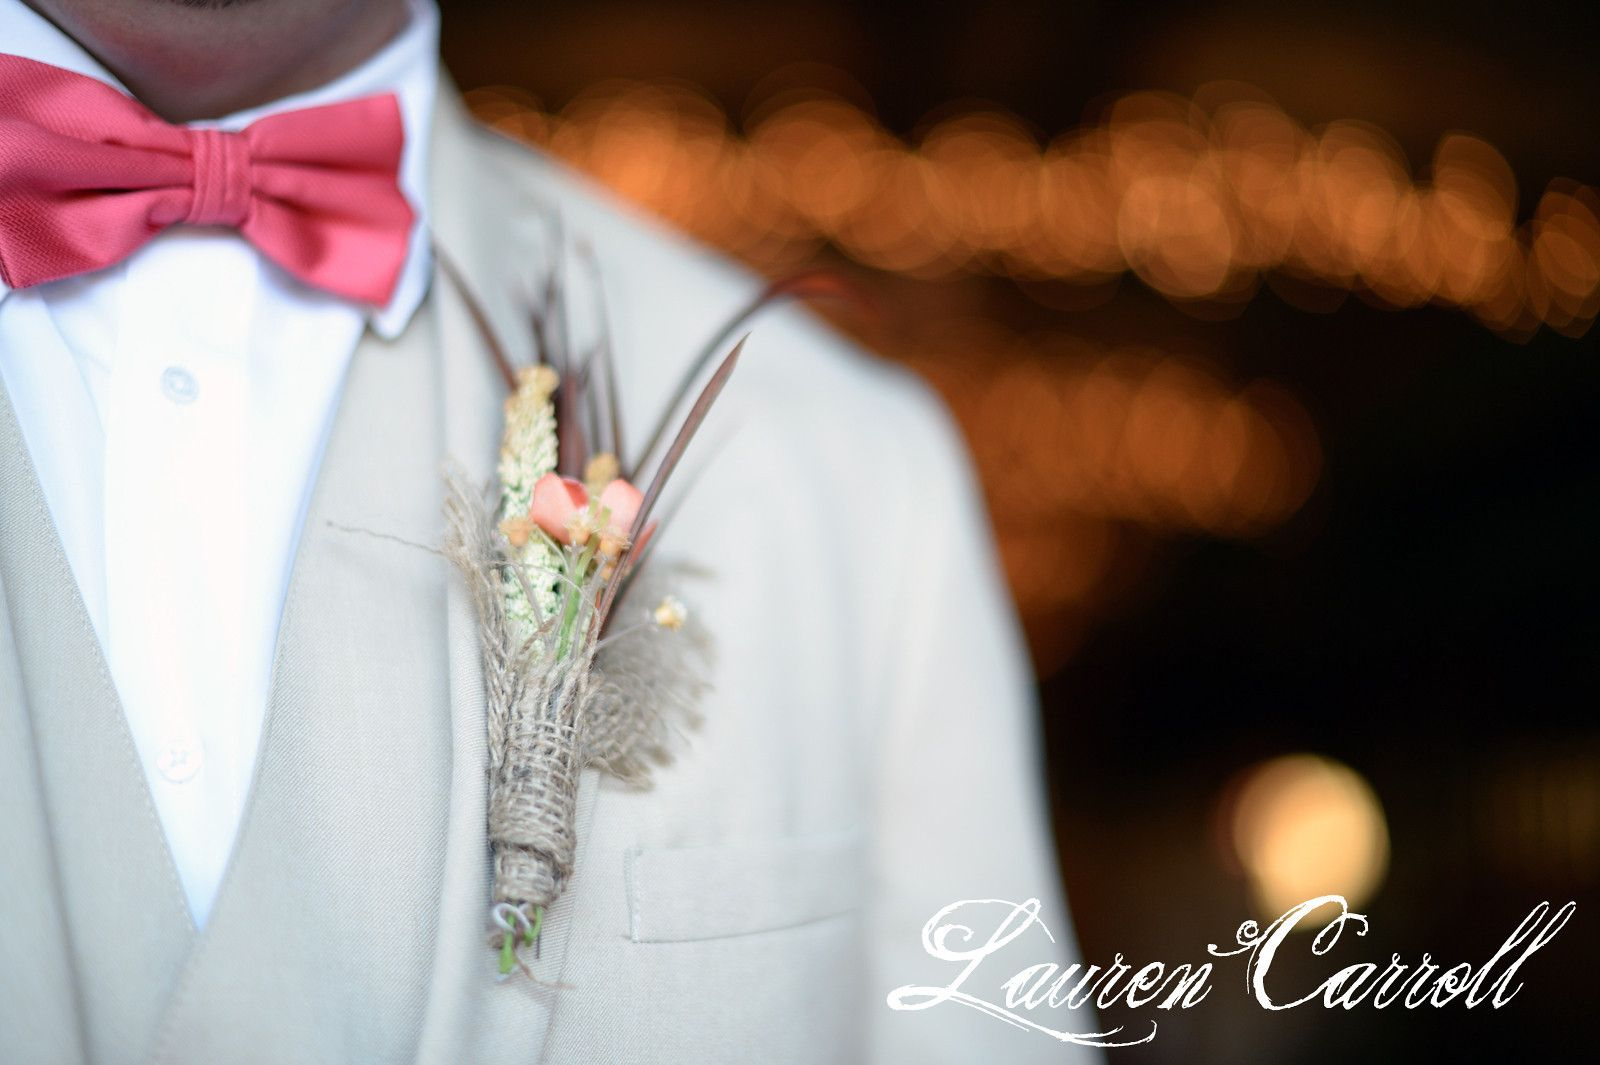 love this boutonniere! it's so different, and perfect!